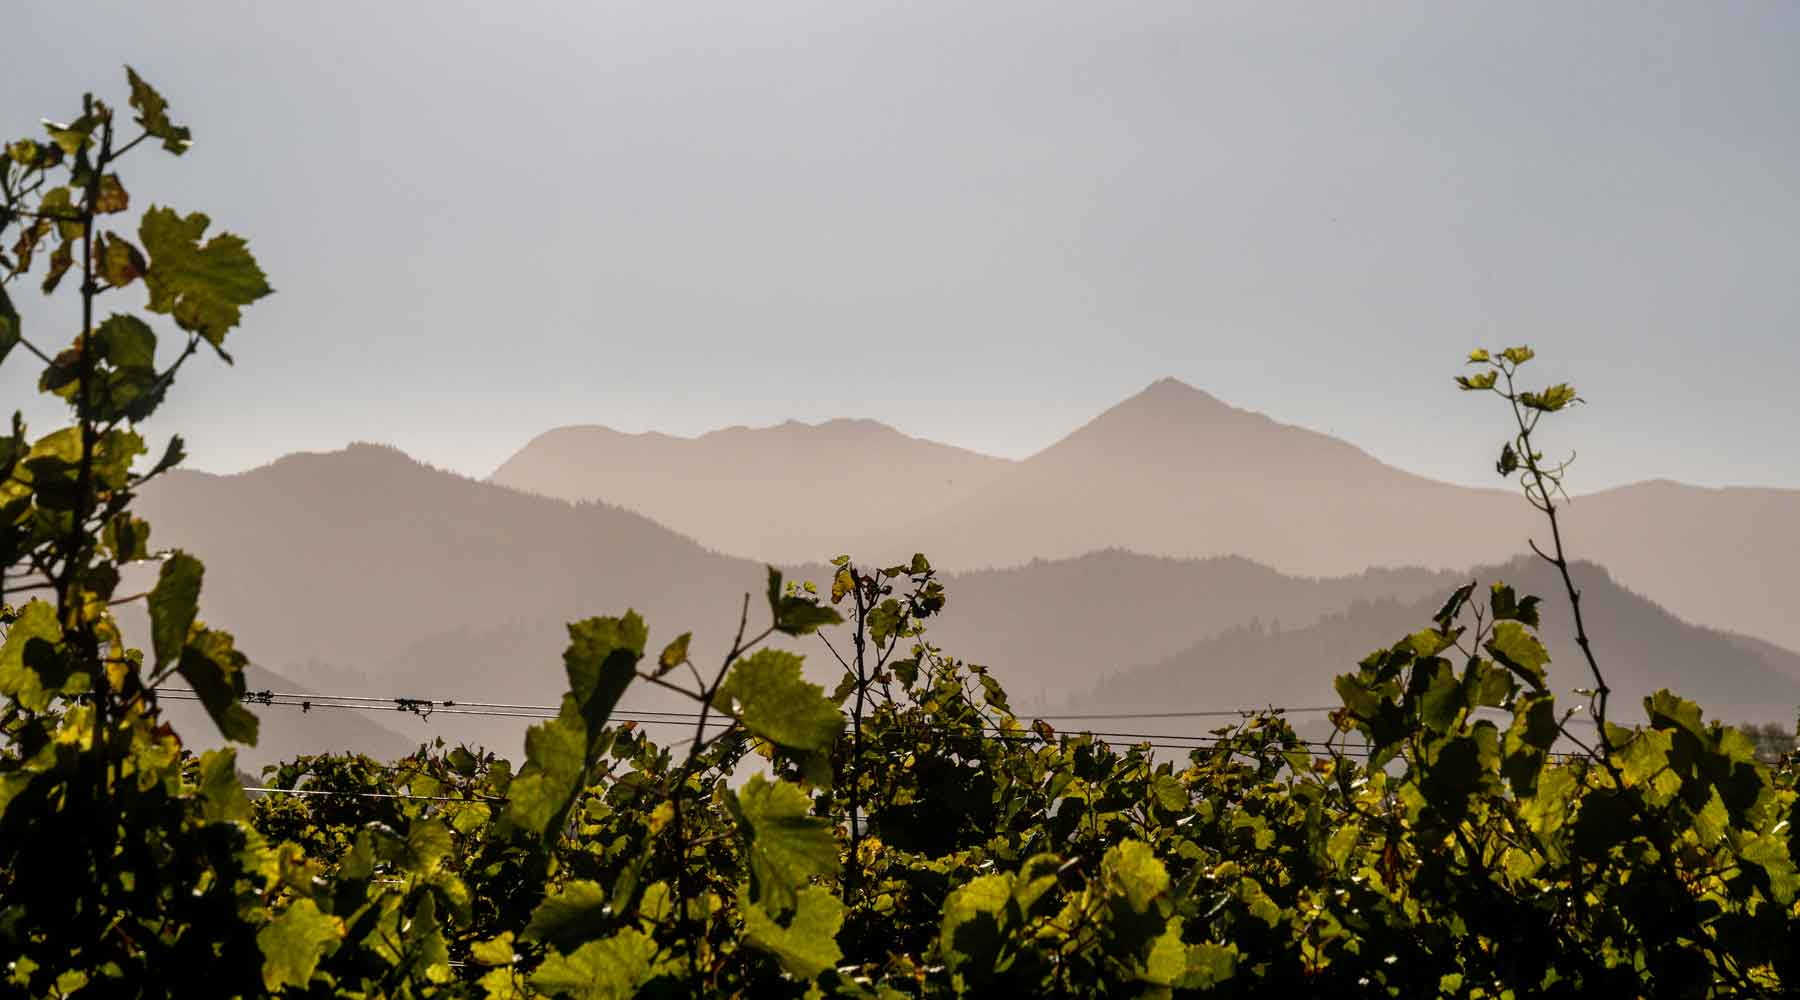 Grape vines of Huia Vineyards in the foreground with the Marlborough hills in the sun in the distance